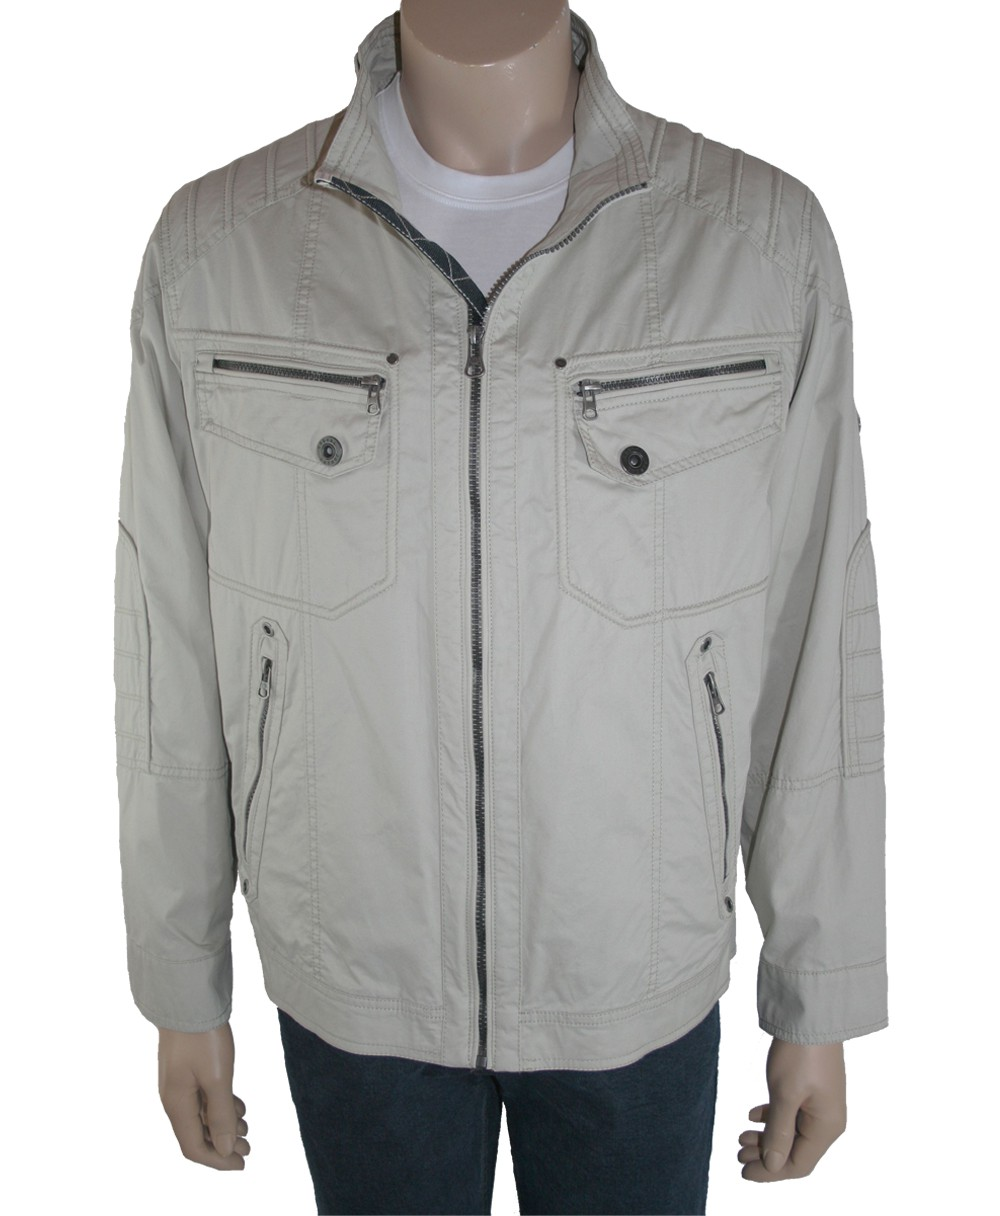 cabano herren sommer jacke blouson new canadian 2105 beige ebay. Black Bedroom Furniture Sets. Home Design Ideas